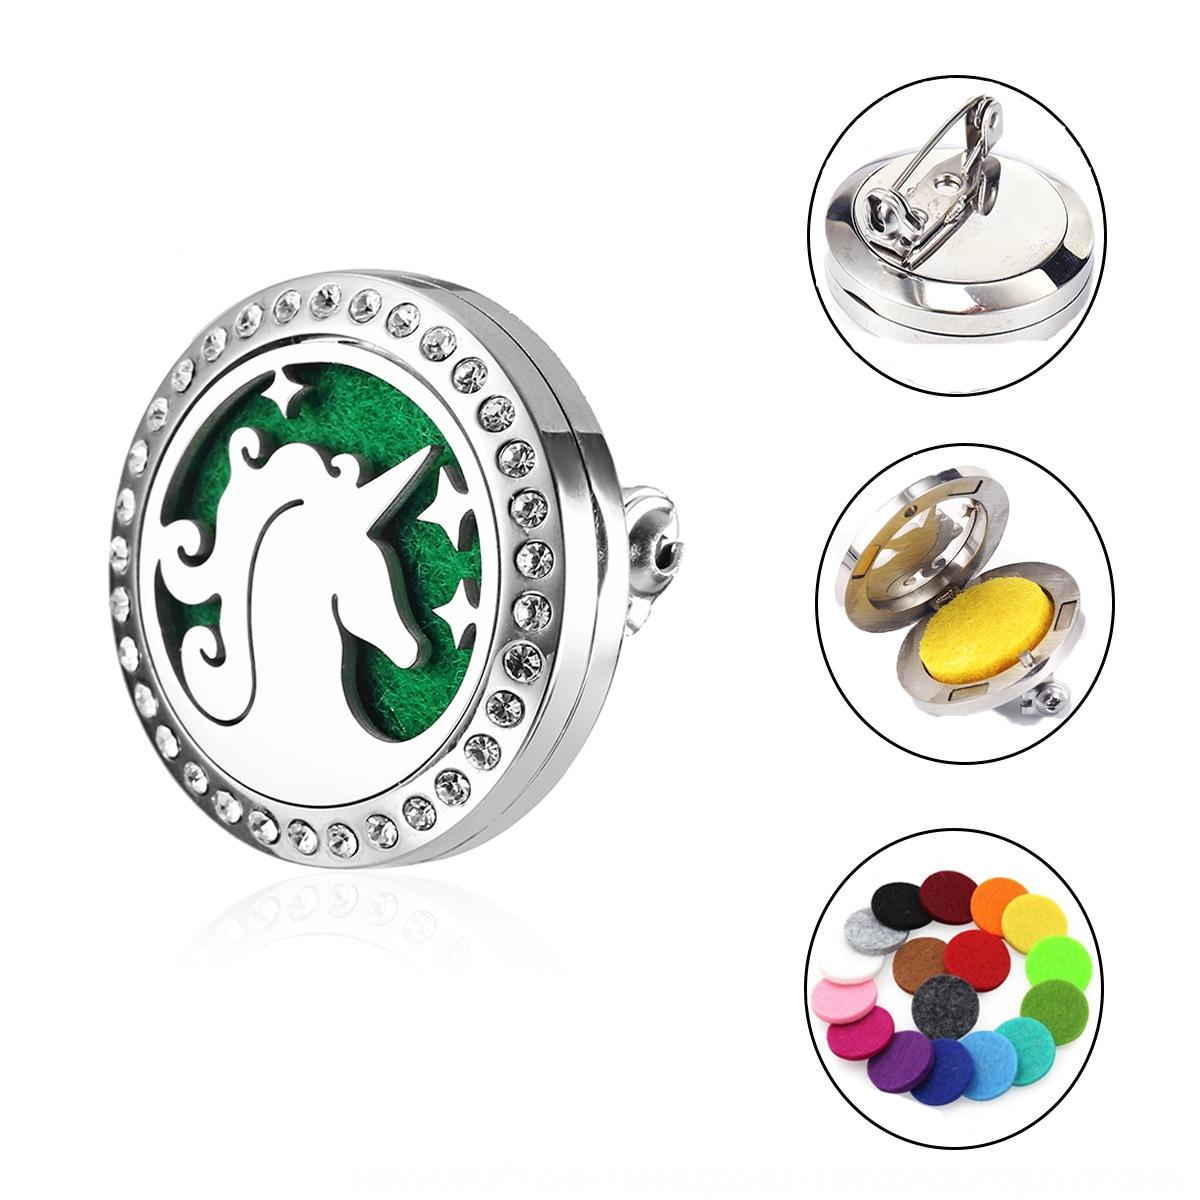 sTd9F 316L stainless steel Pendant aromatherapy personalizedbrooch pendant perfume aromatherapy essential oil diffusion brooch accessories